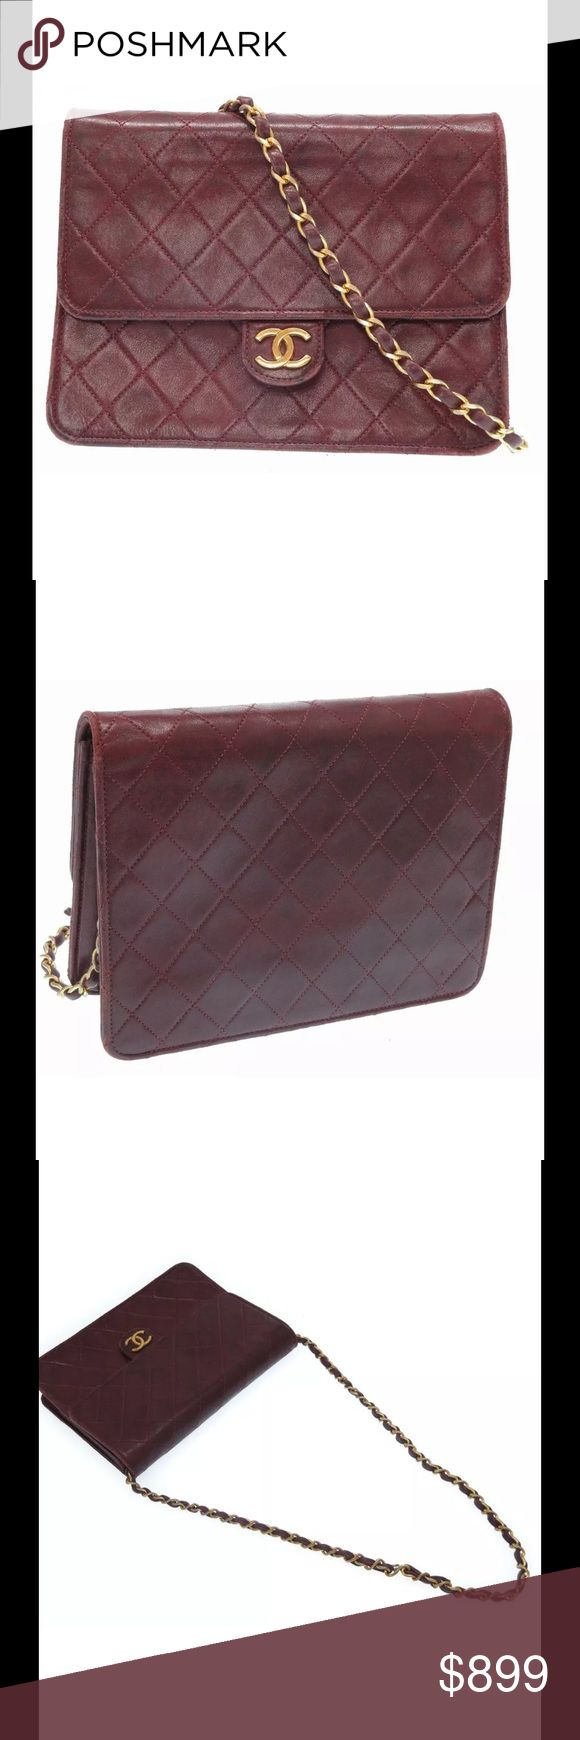 Authentic Chanel Shoulder Bag This beautiful Chanel bag is in need of some TLC but it still has a lot of life left. It is a great color that is sure to compliment any look. CHANEL Bags Shoulder Bags